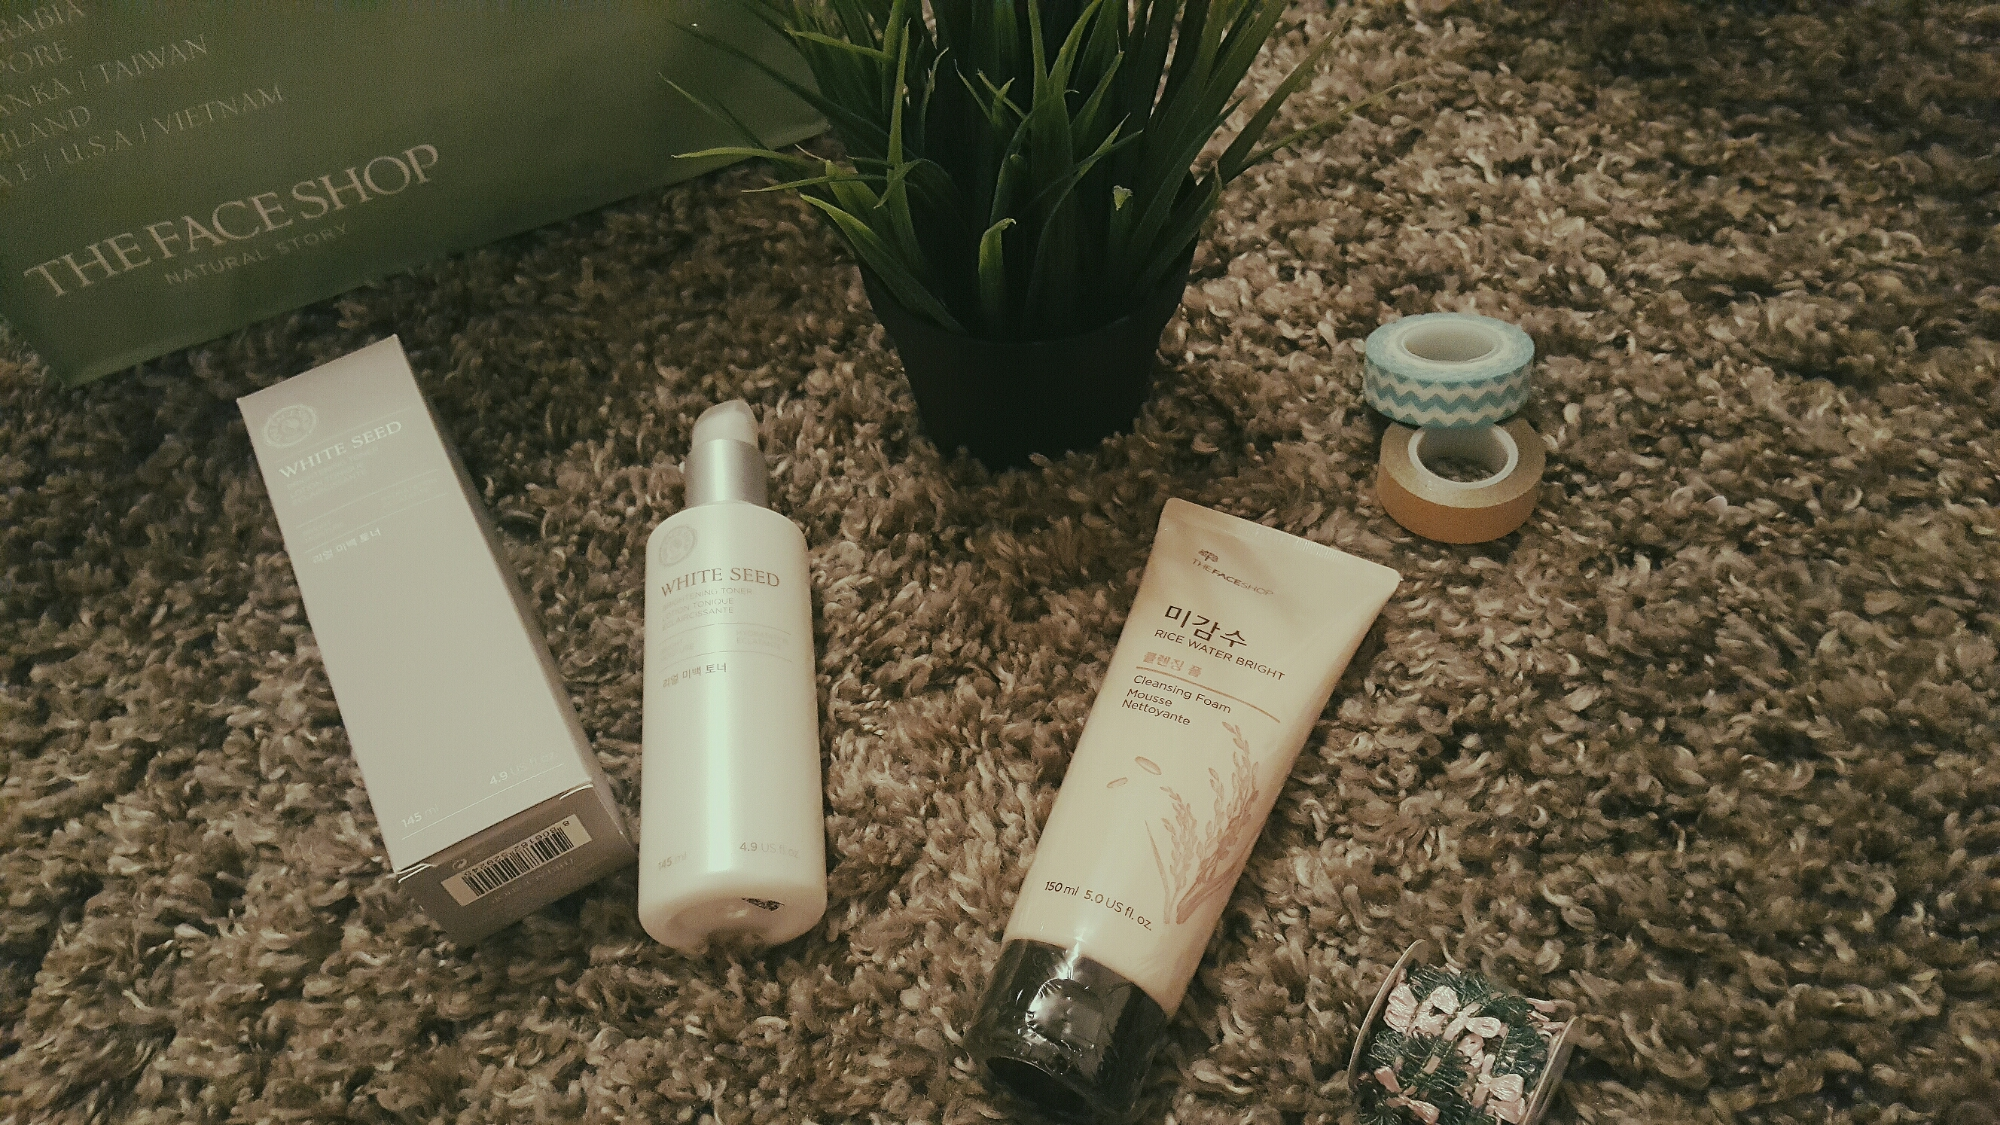 wp image 982137083jpg - 3-Item THEFACESHOP Haul Review! (WHITE SEED Brightening Toner, RICE WATER BRIGHT Cleansing Foam & Magic Cover BB Cream)